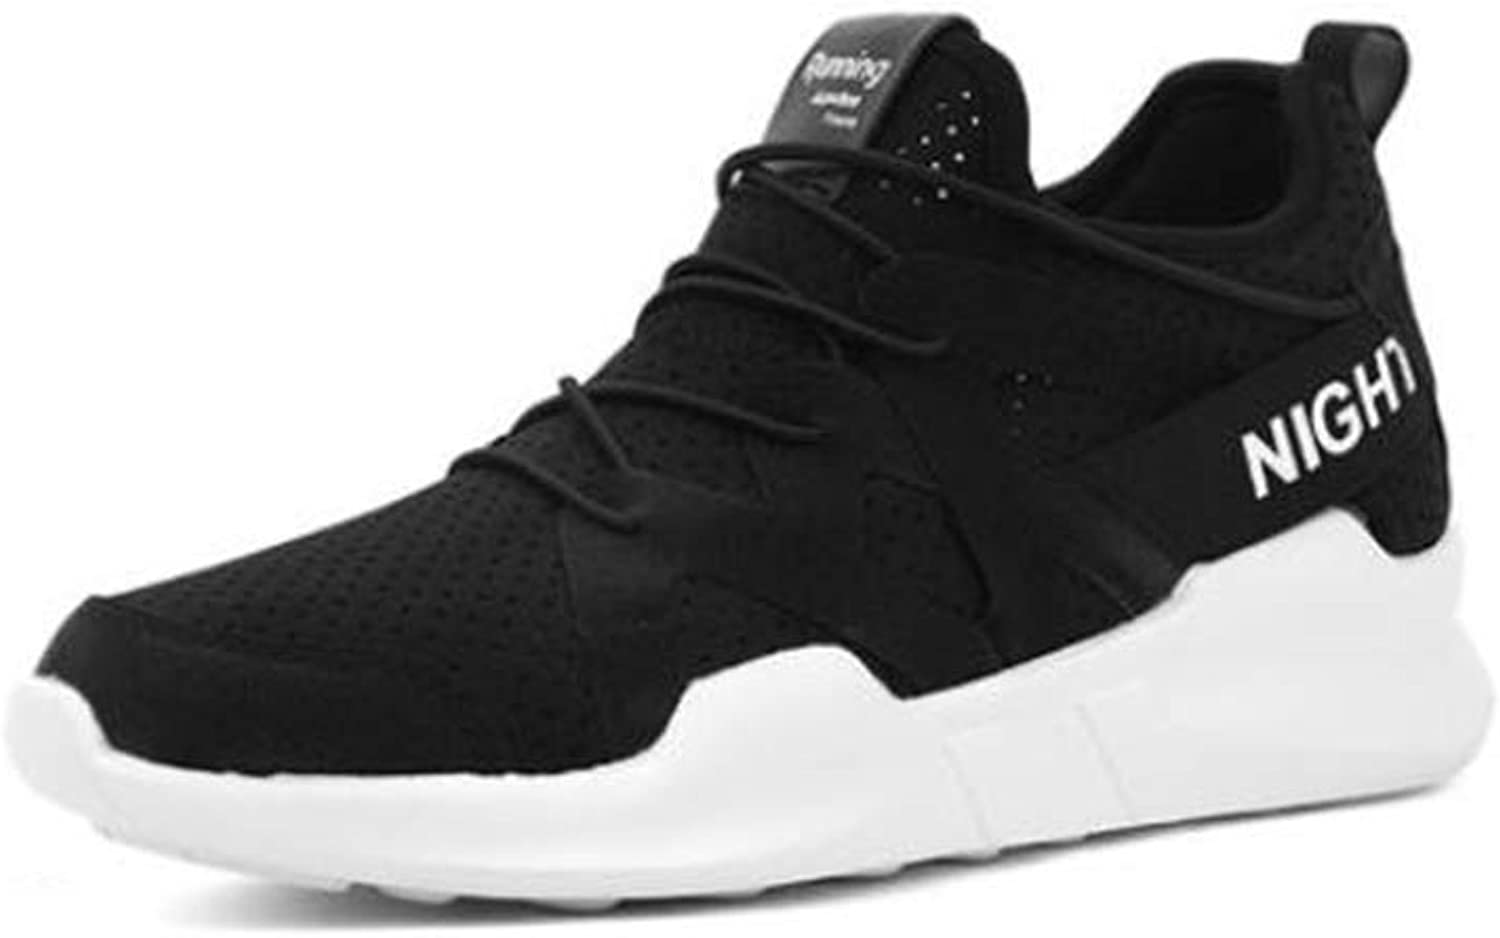 LF Autumn Sneakers Casual shoes Running shoes